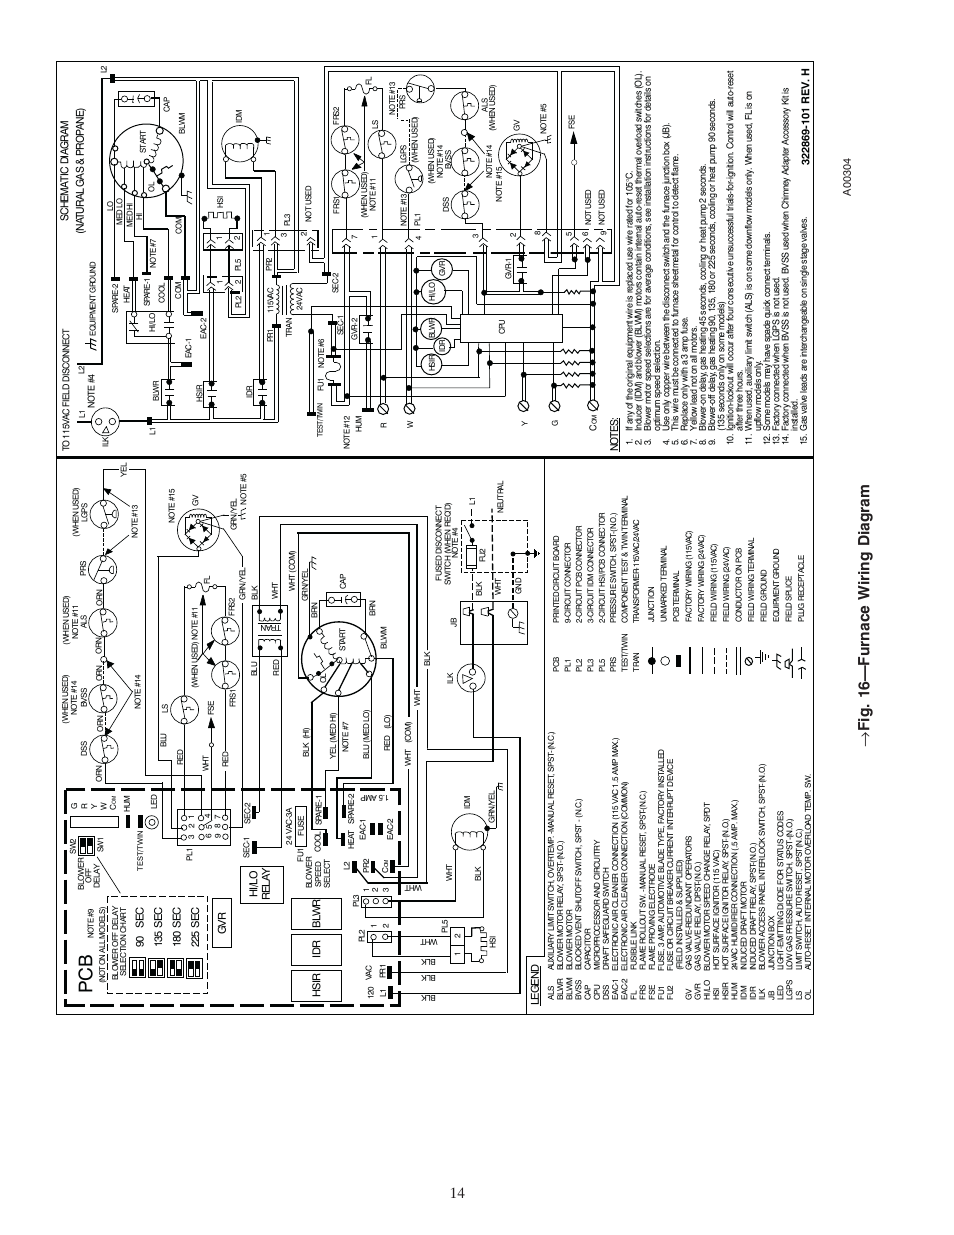 carrier furnace wiring diagram electronic schematics collectionsfig 16\\u2014furnace wiring diagram carrier weathermaker 8000 58zav16\\u2014furnace wiring diagram carrier weathermaker